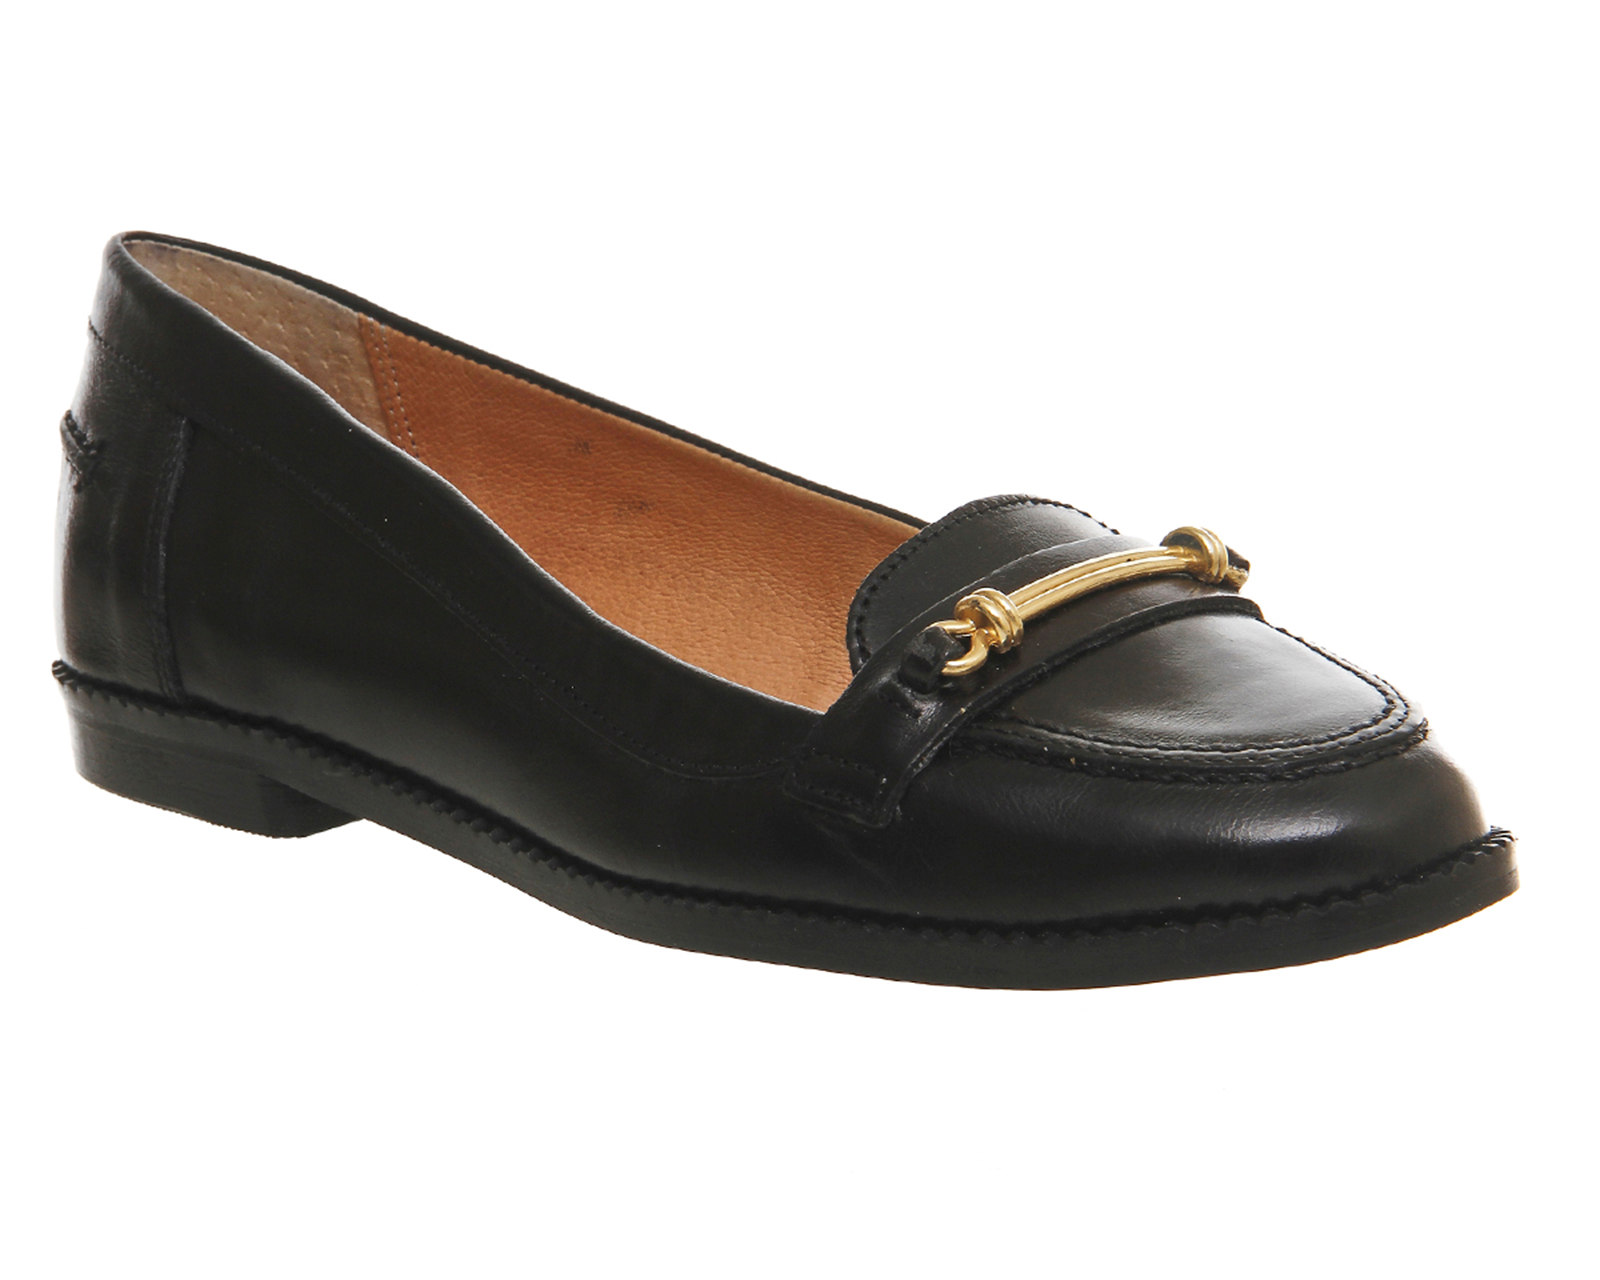 Free shipping BOTH ways on womens black loafers, from our vast selection of styles. Fast delivery, and 24/7/ real-person service with a smile. Click or call